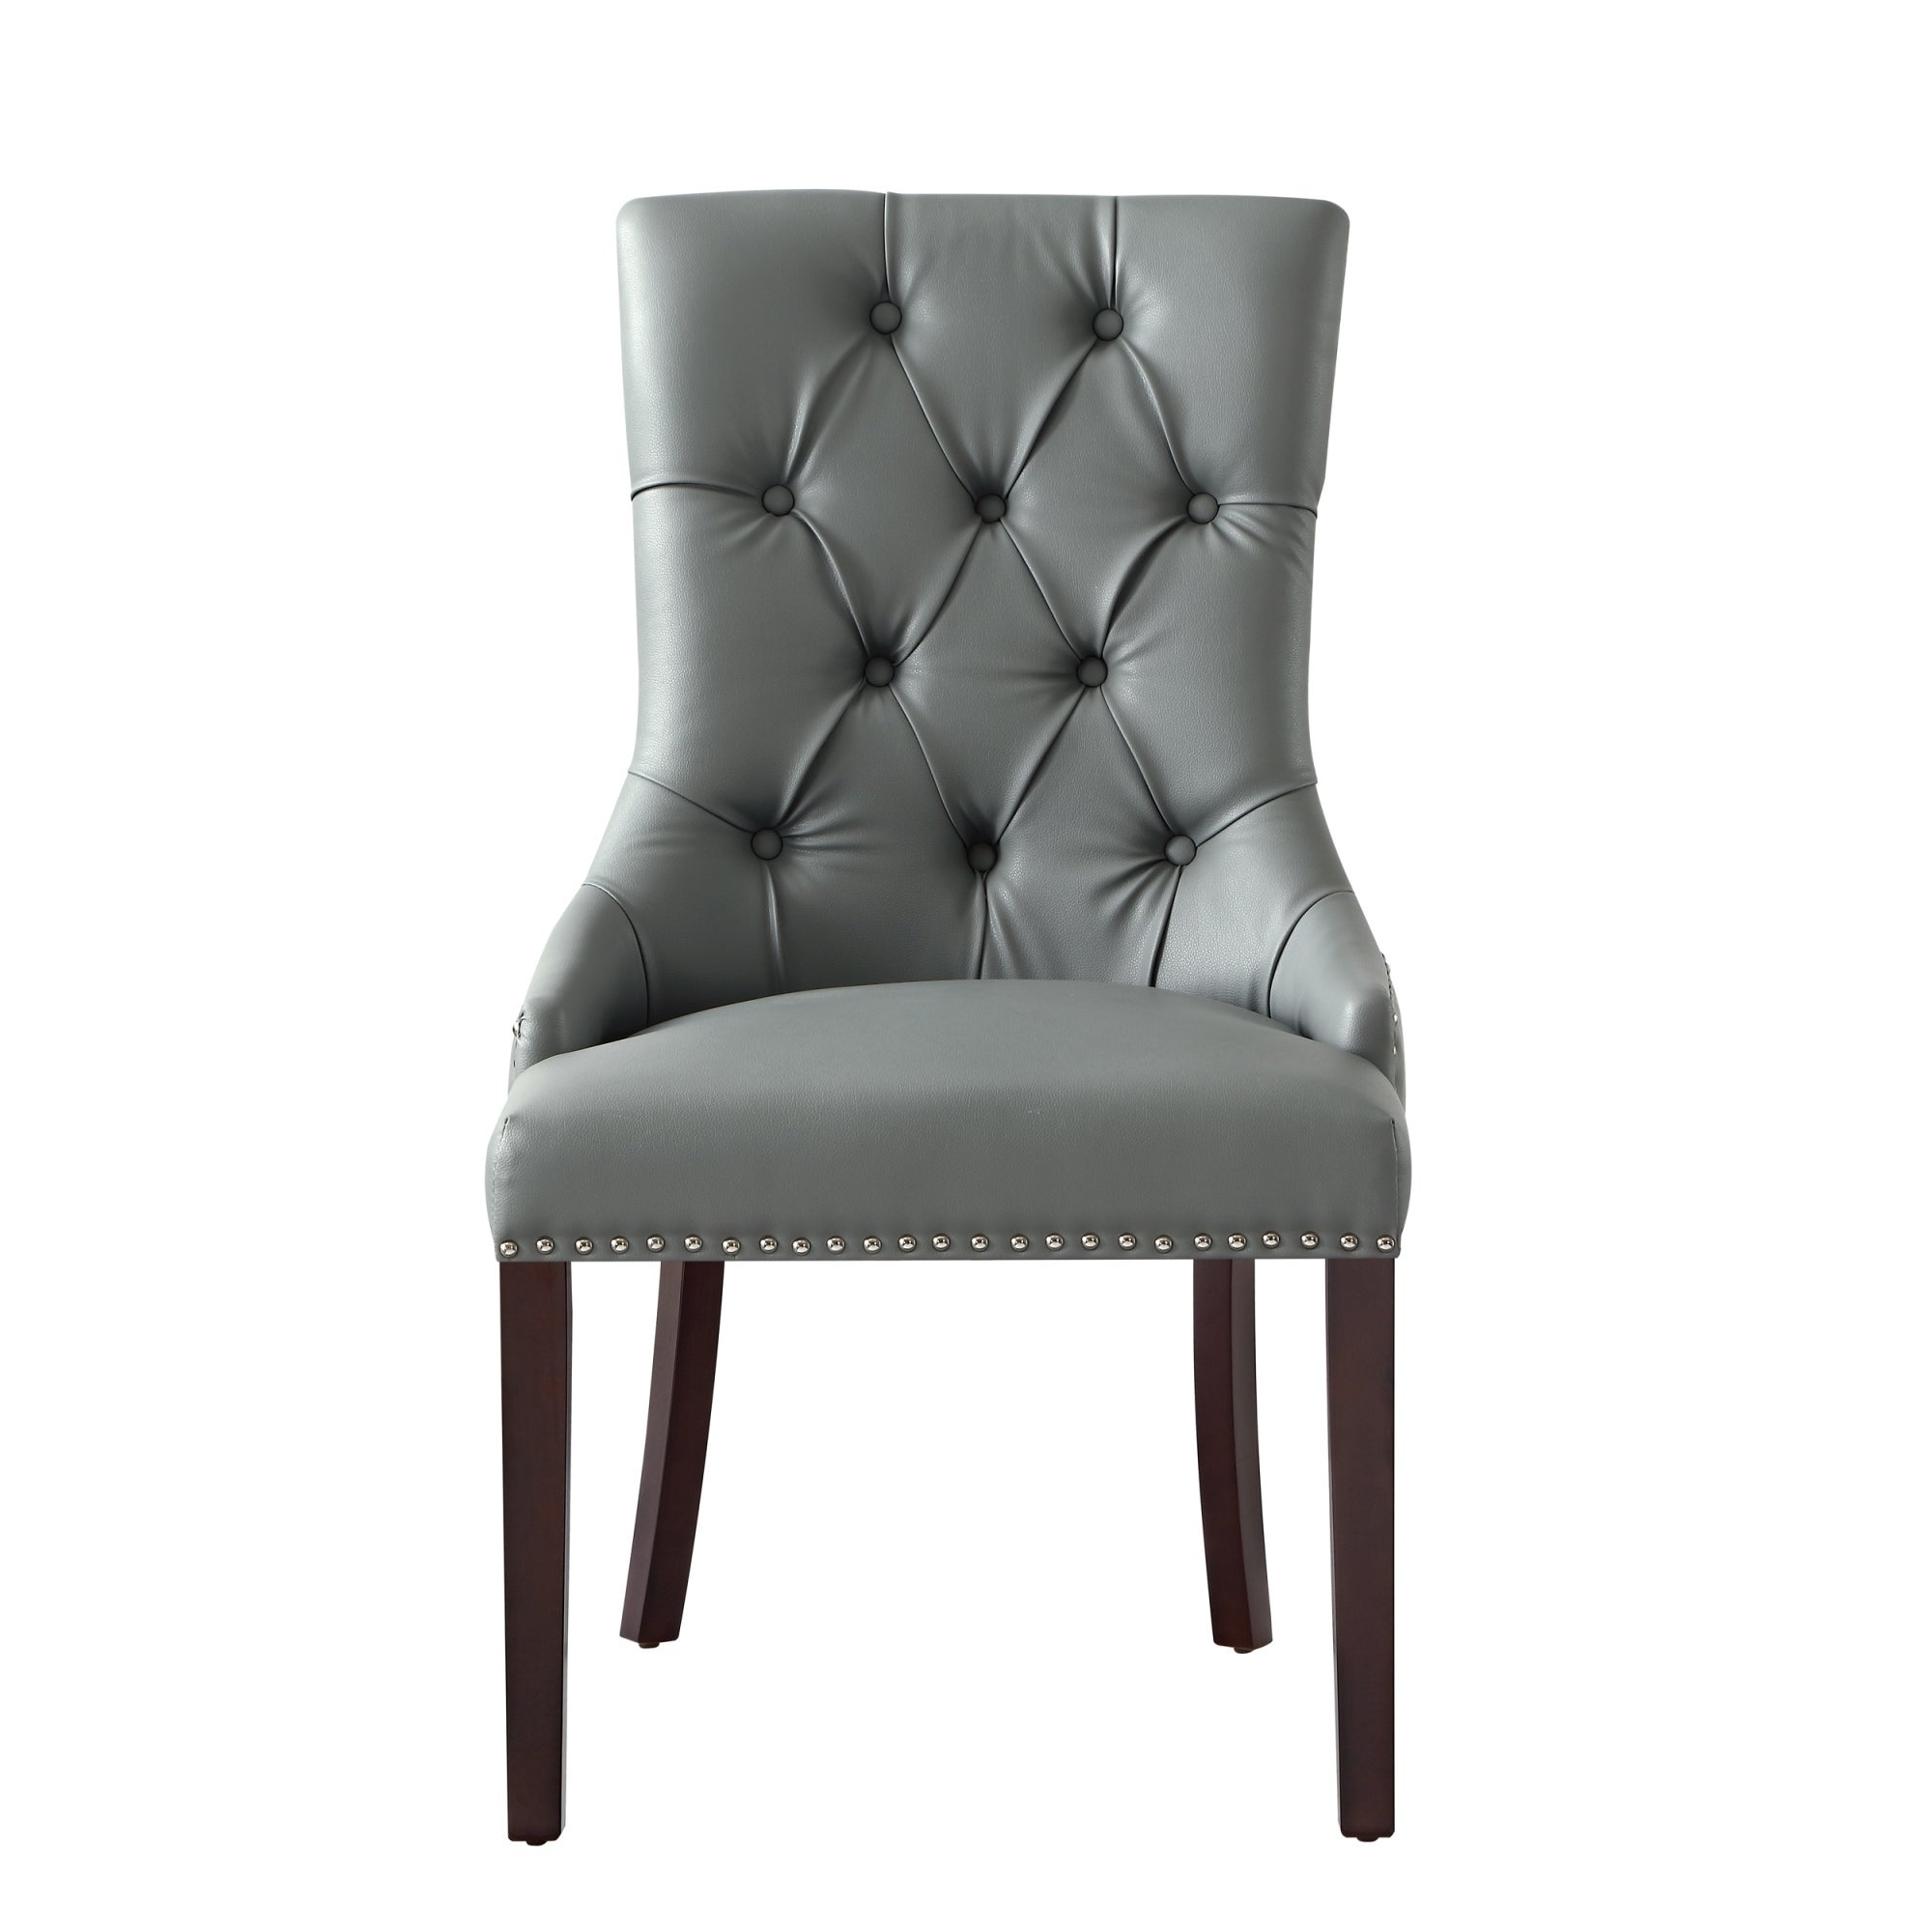 george leather dining chair tufted nailhead trim set of 2